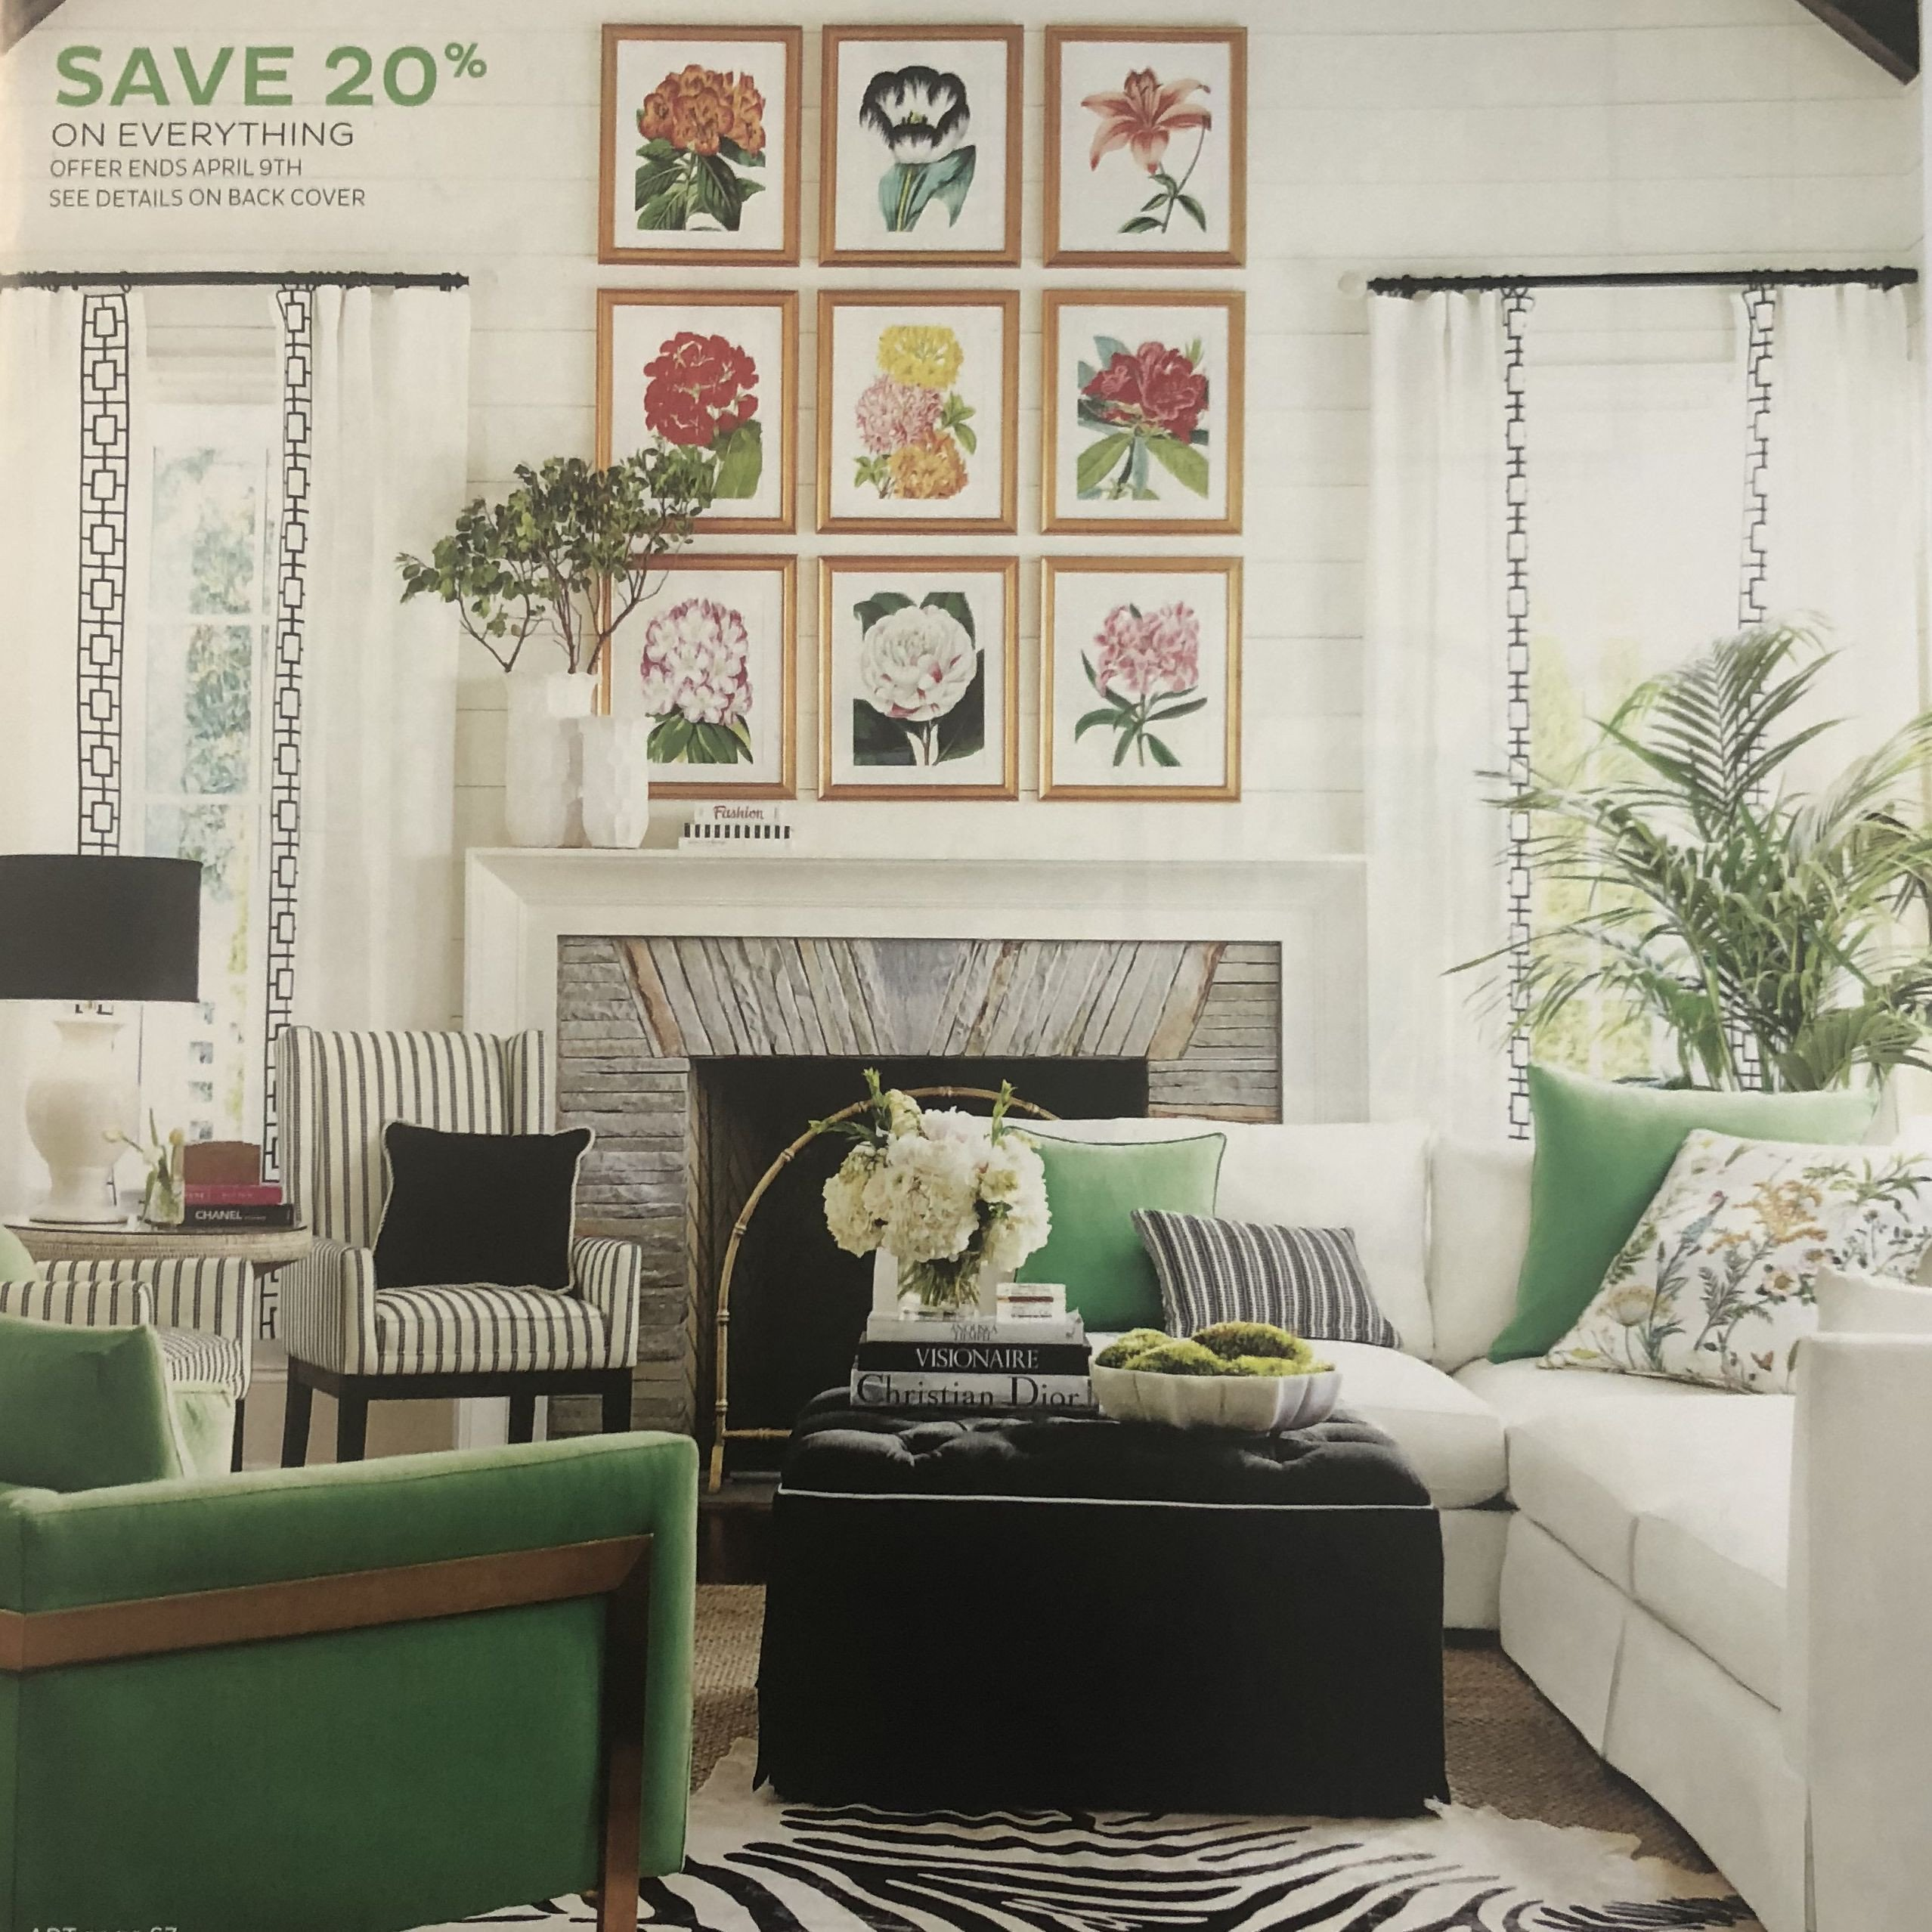 Catalogs by Mail Home Decor New 29 Free Home Decor Catalogs You Can Get In the Mail